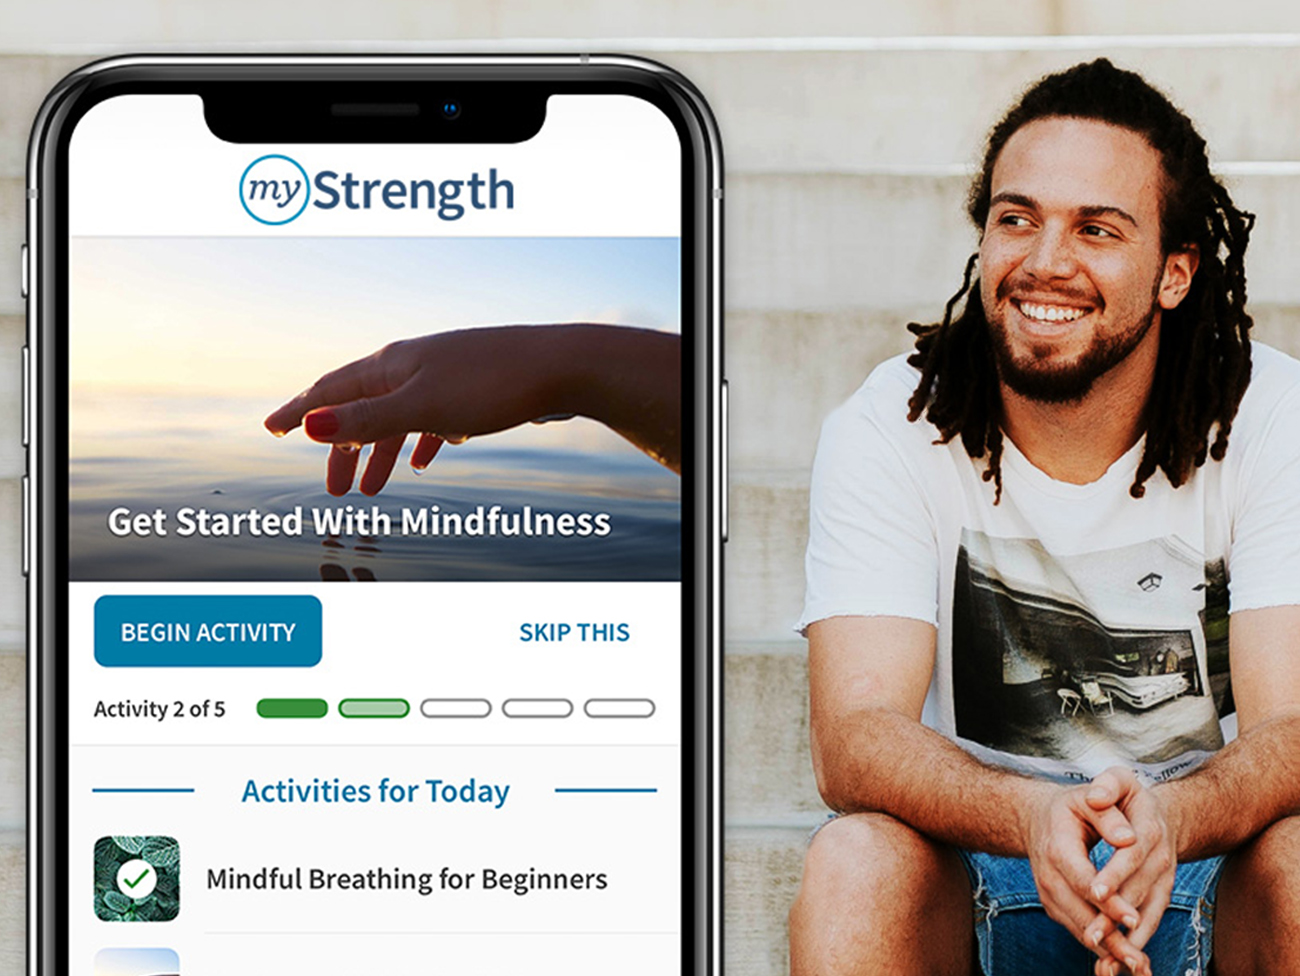 A mobile phone with the Kaiser Permanente myStrength app loaded and an image of a smiling young man sitting on some steps.